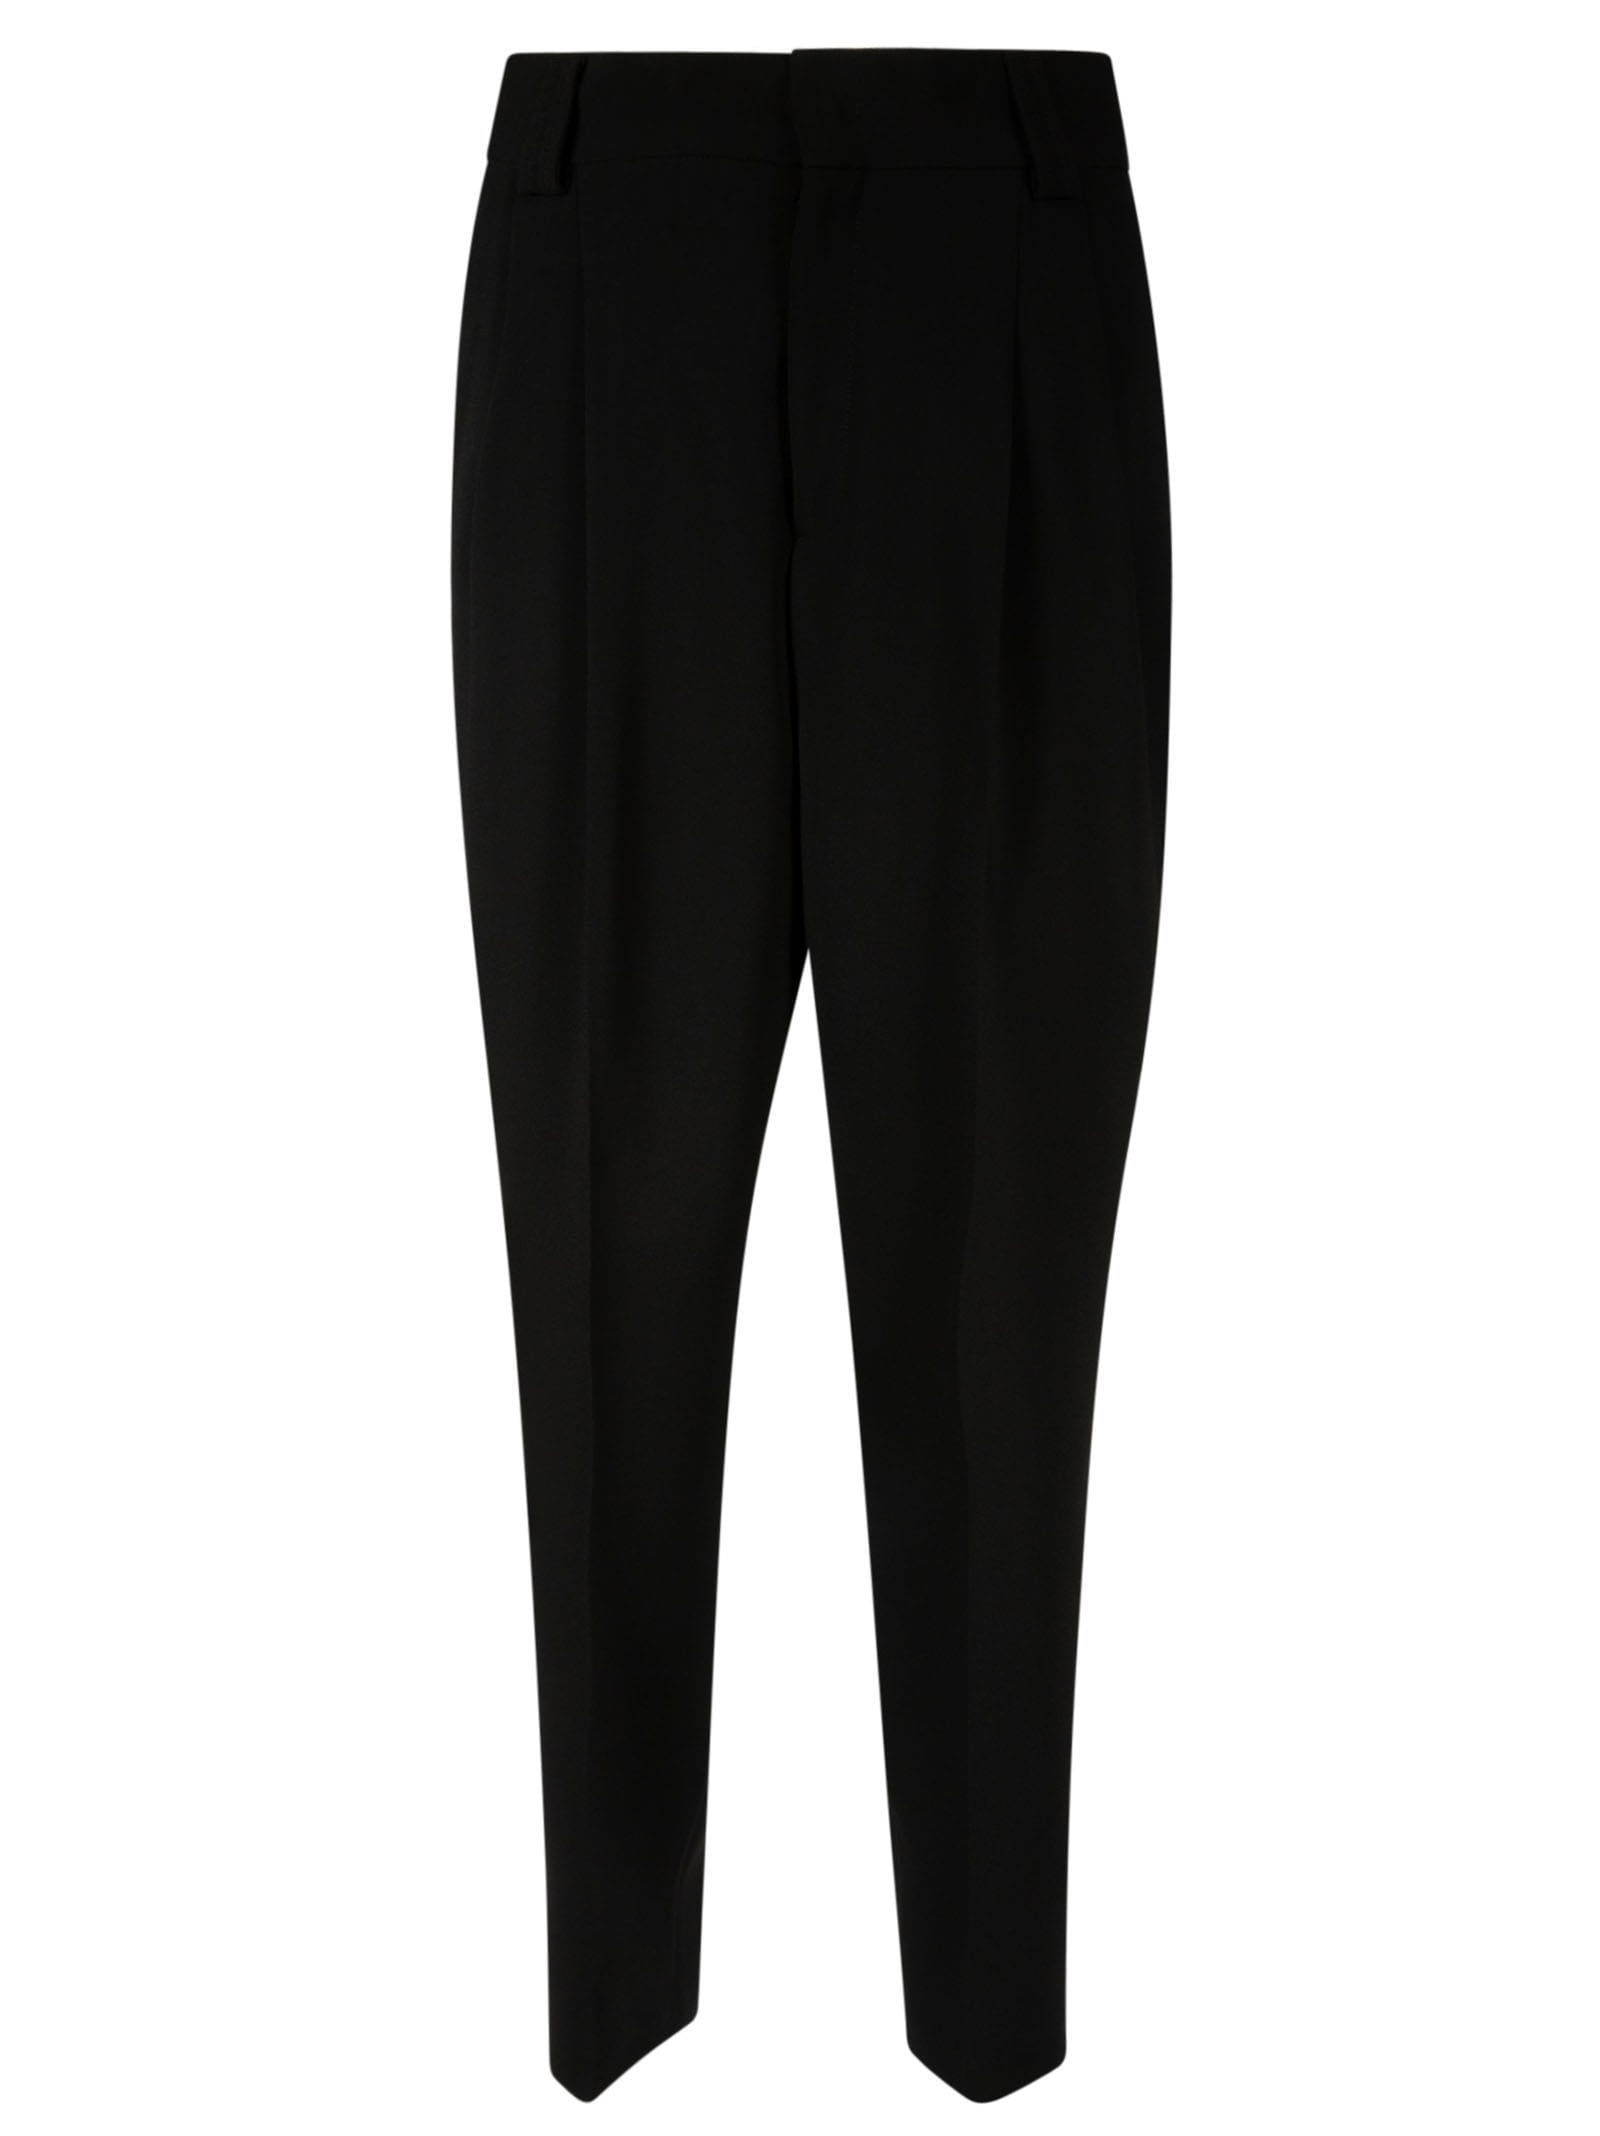 Red Valentino Pants CLASSIC HIGH WAIST TROUSERS